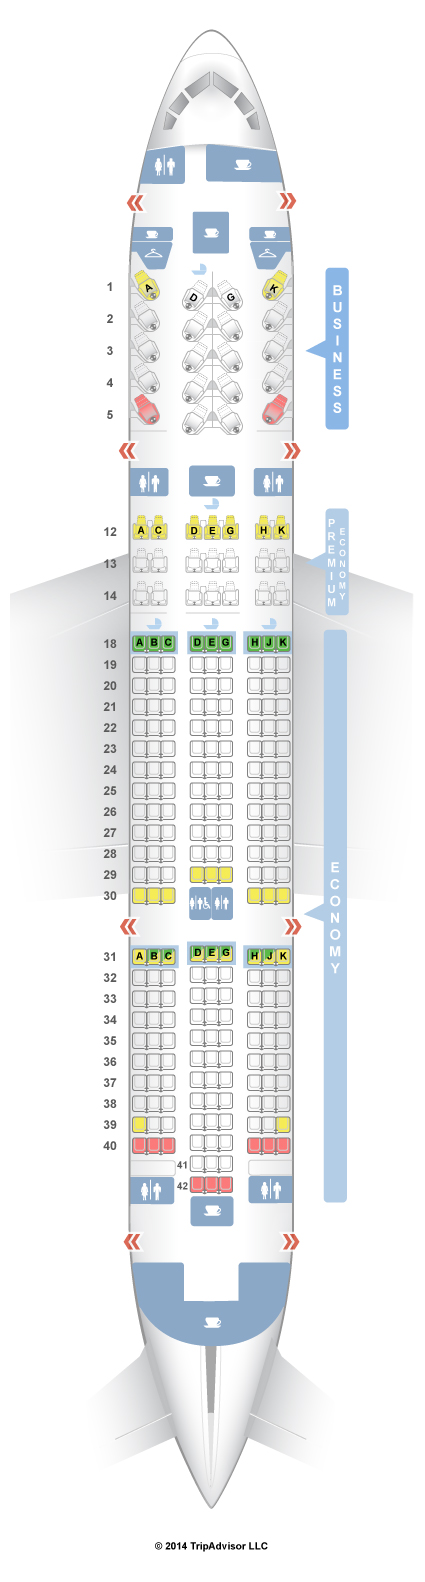 Seatguru Seat Map Air Canada Boeing 787 8 788